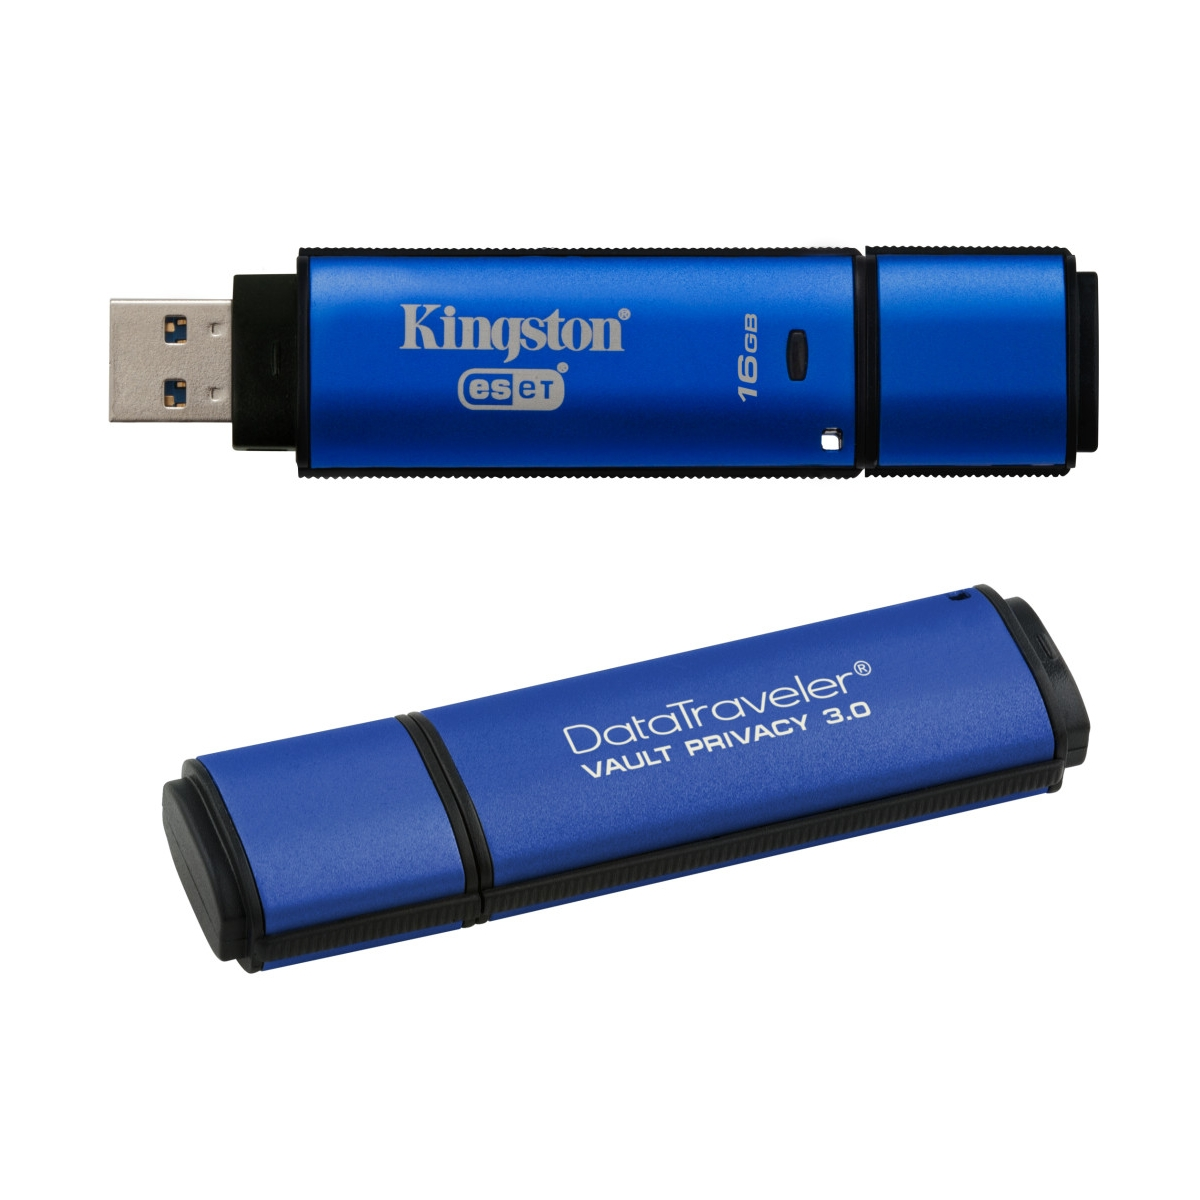 Kingston usb security software